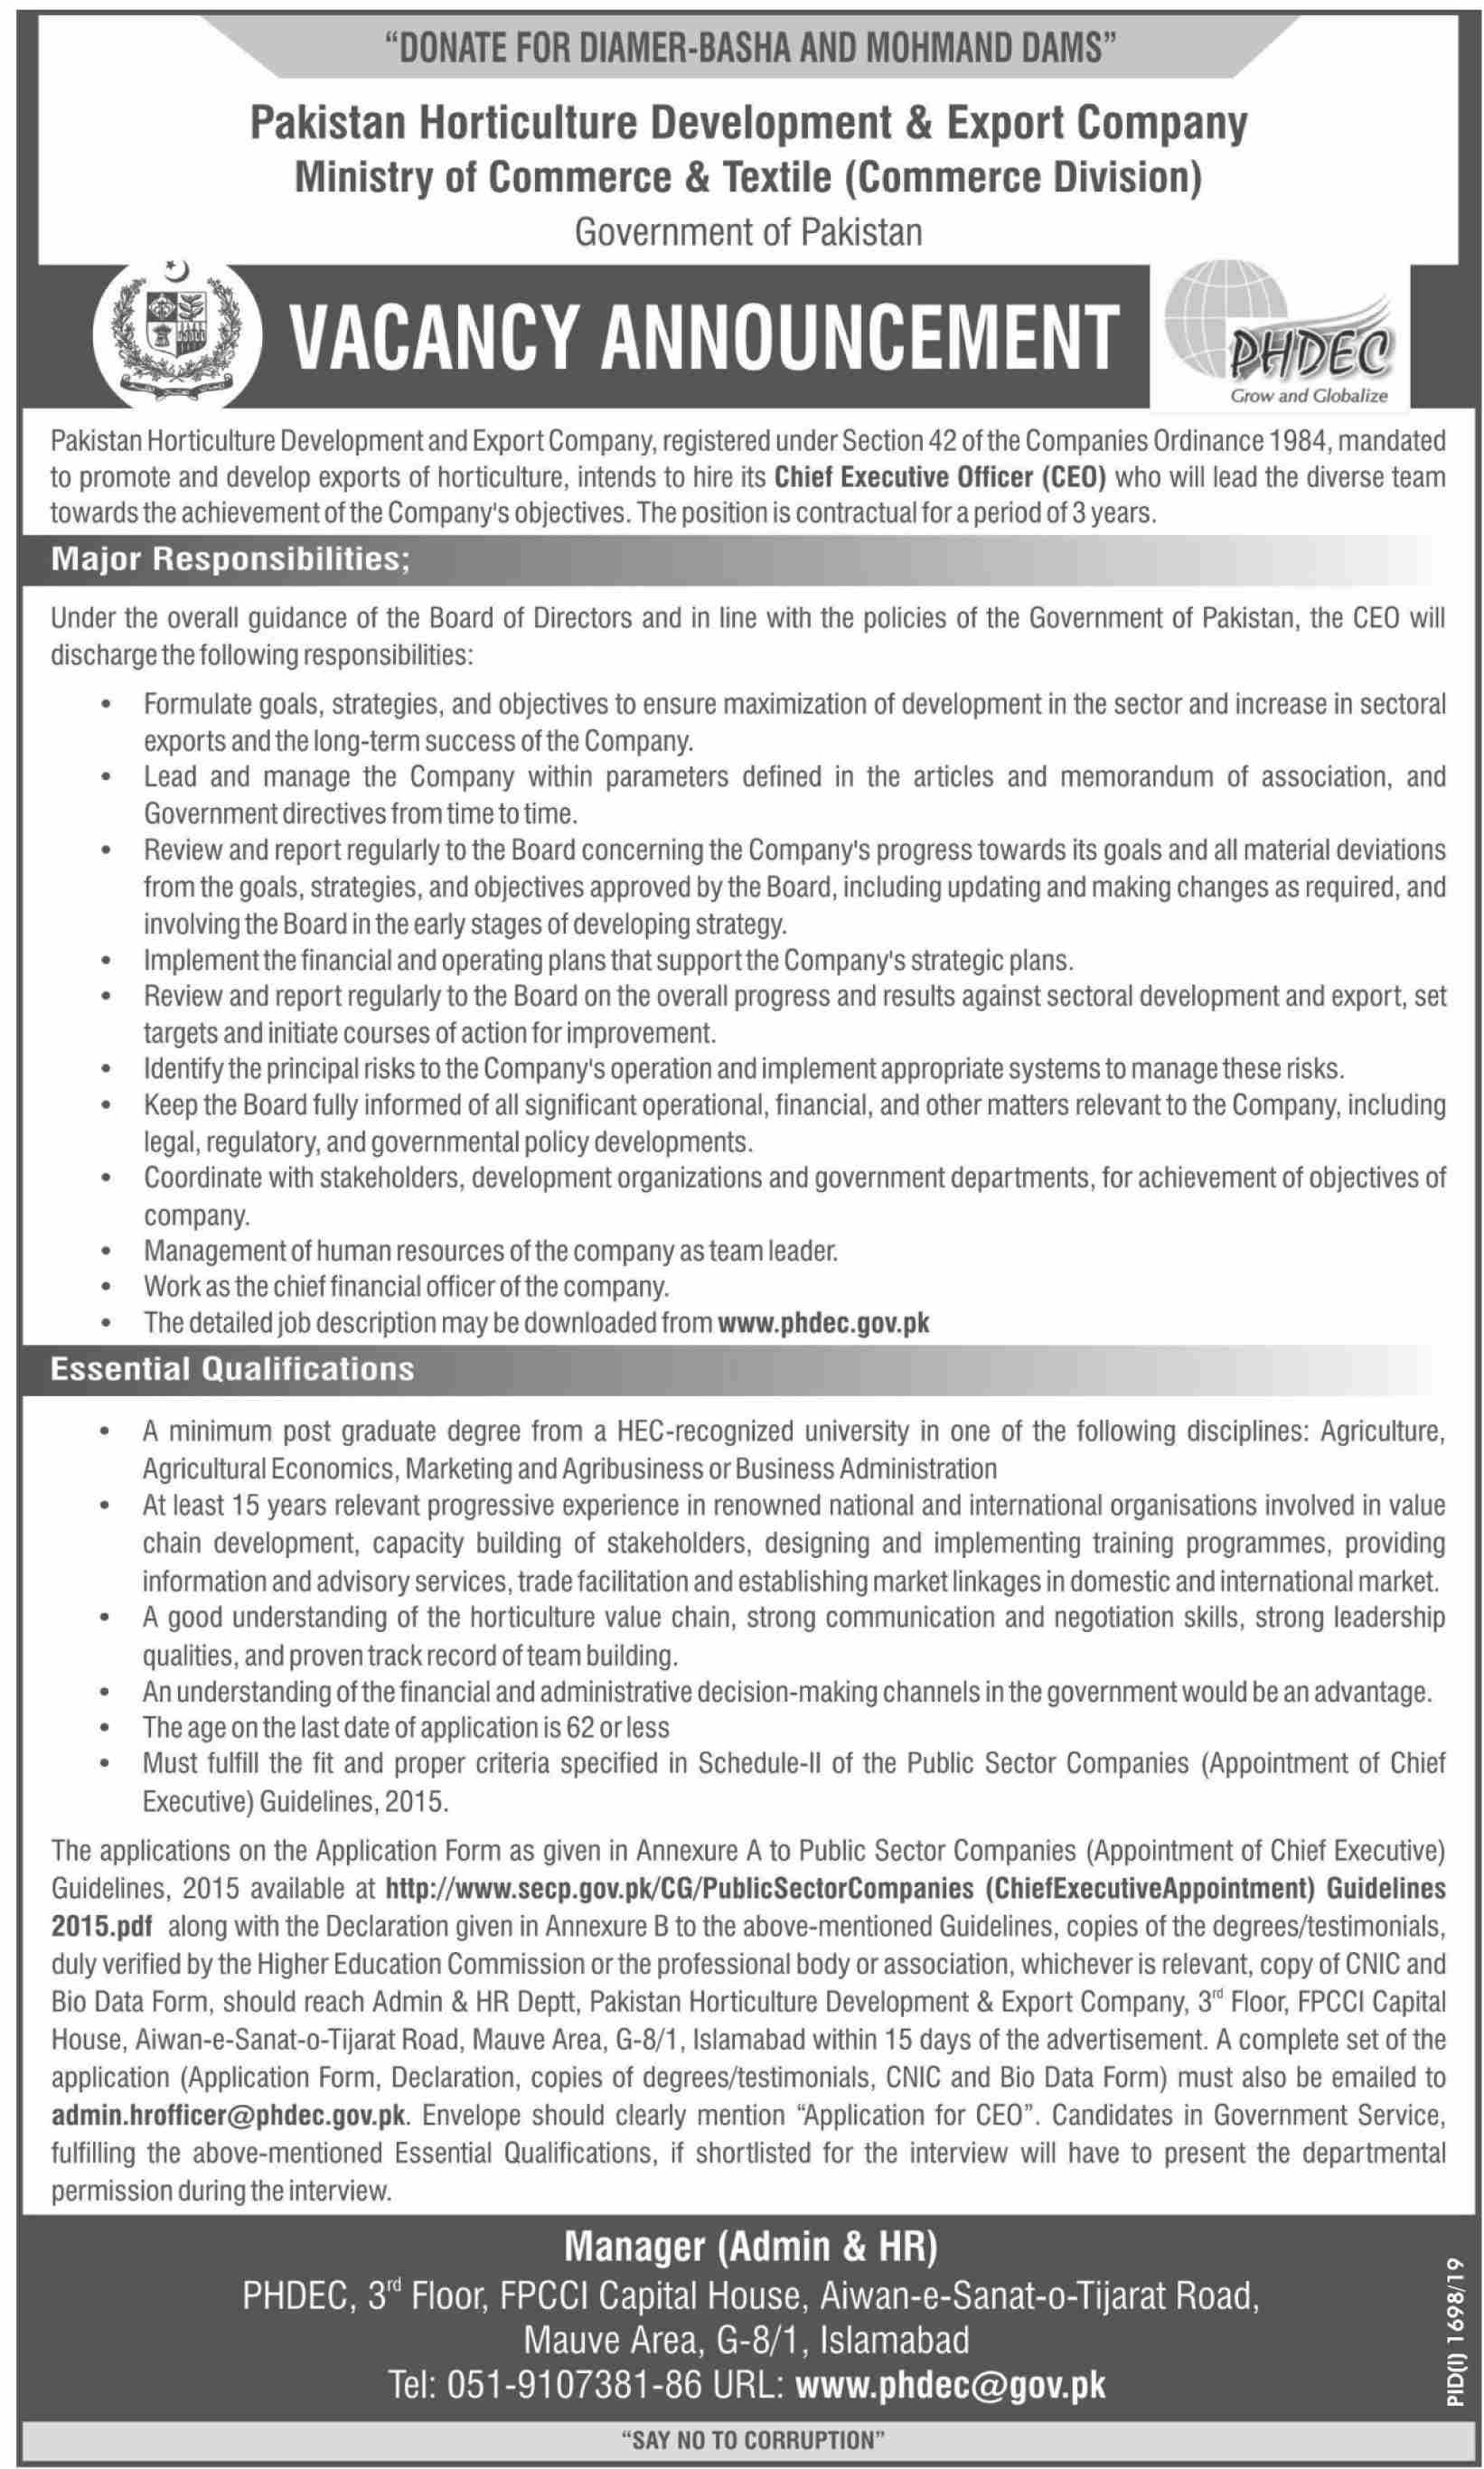 Chief Executive Officer Job In Pakistan Horticulture Development & Export Company Islamabad